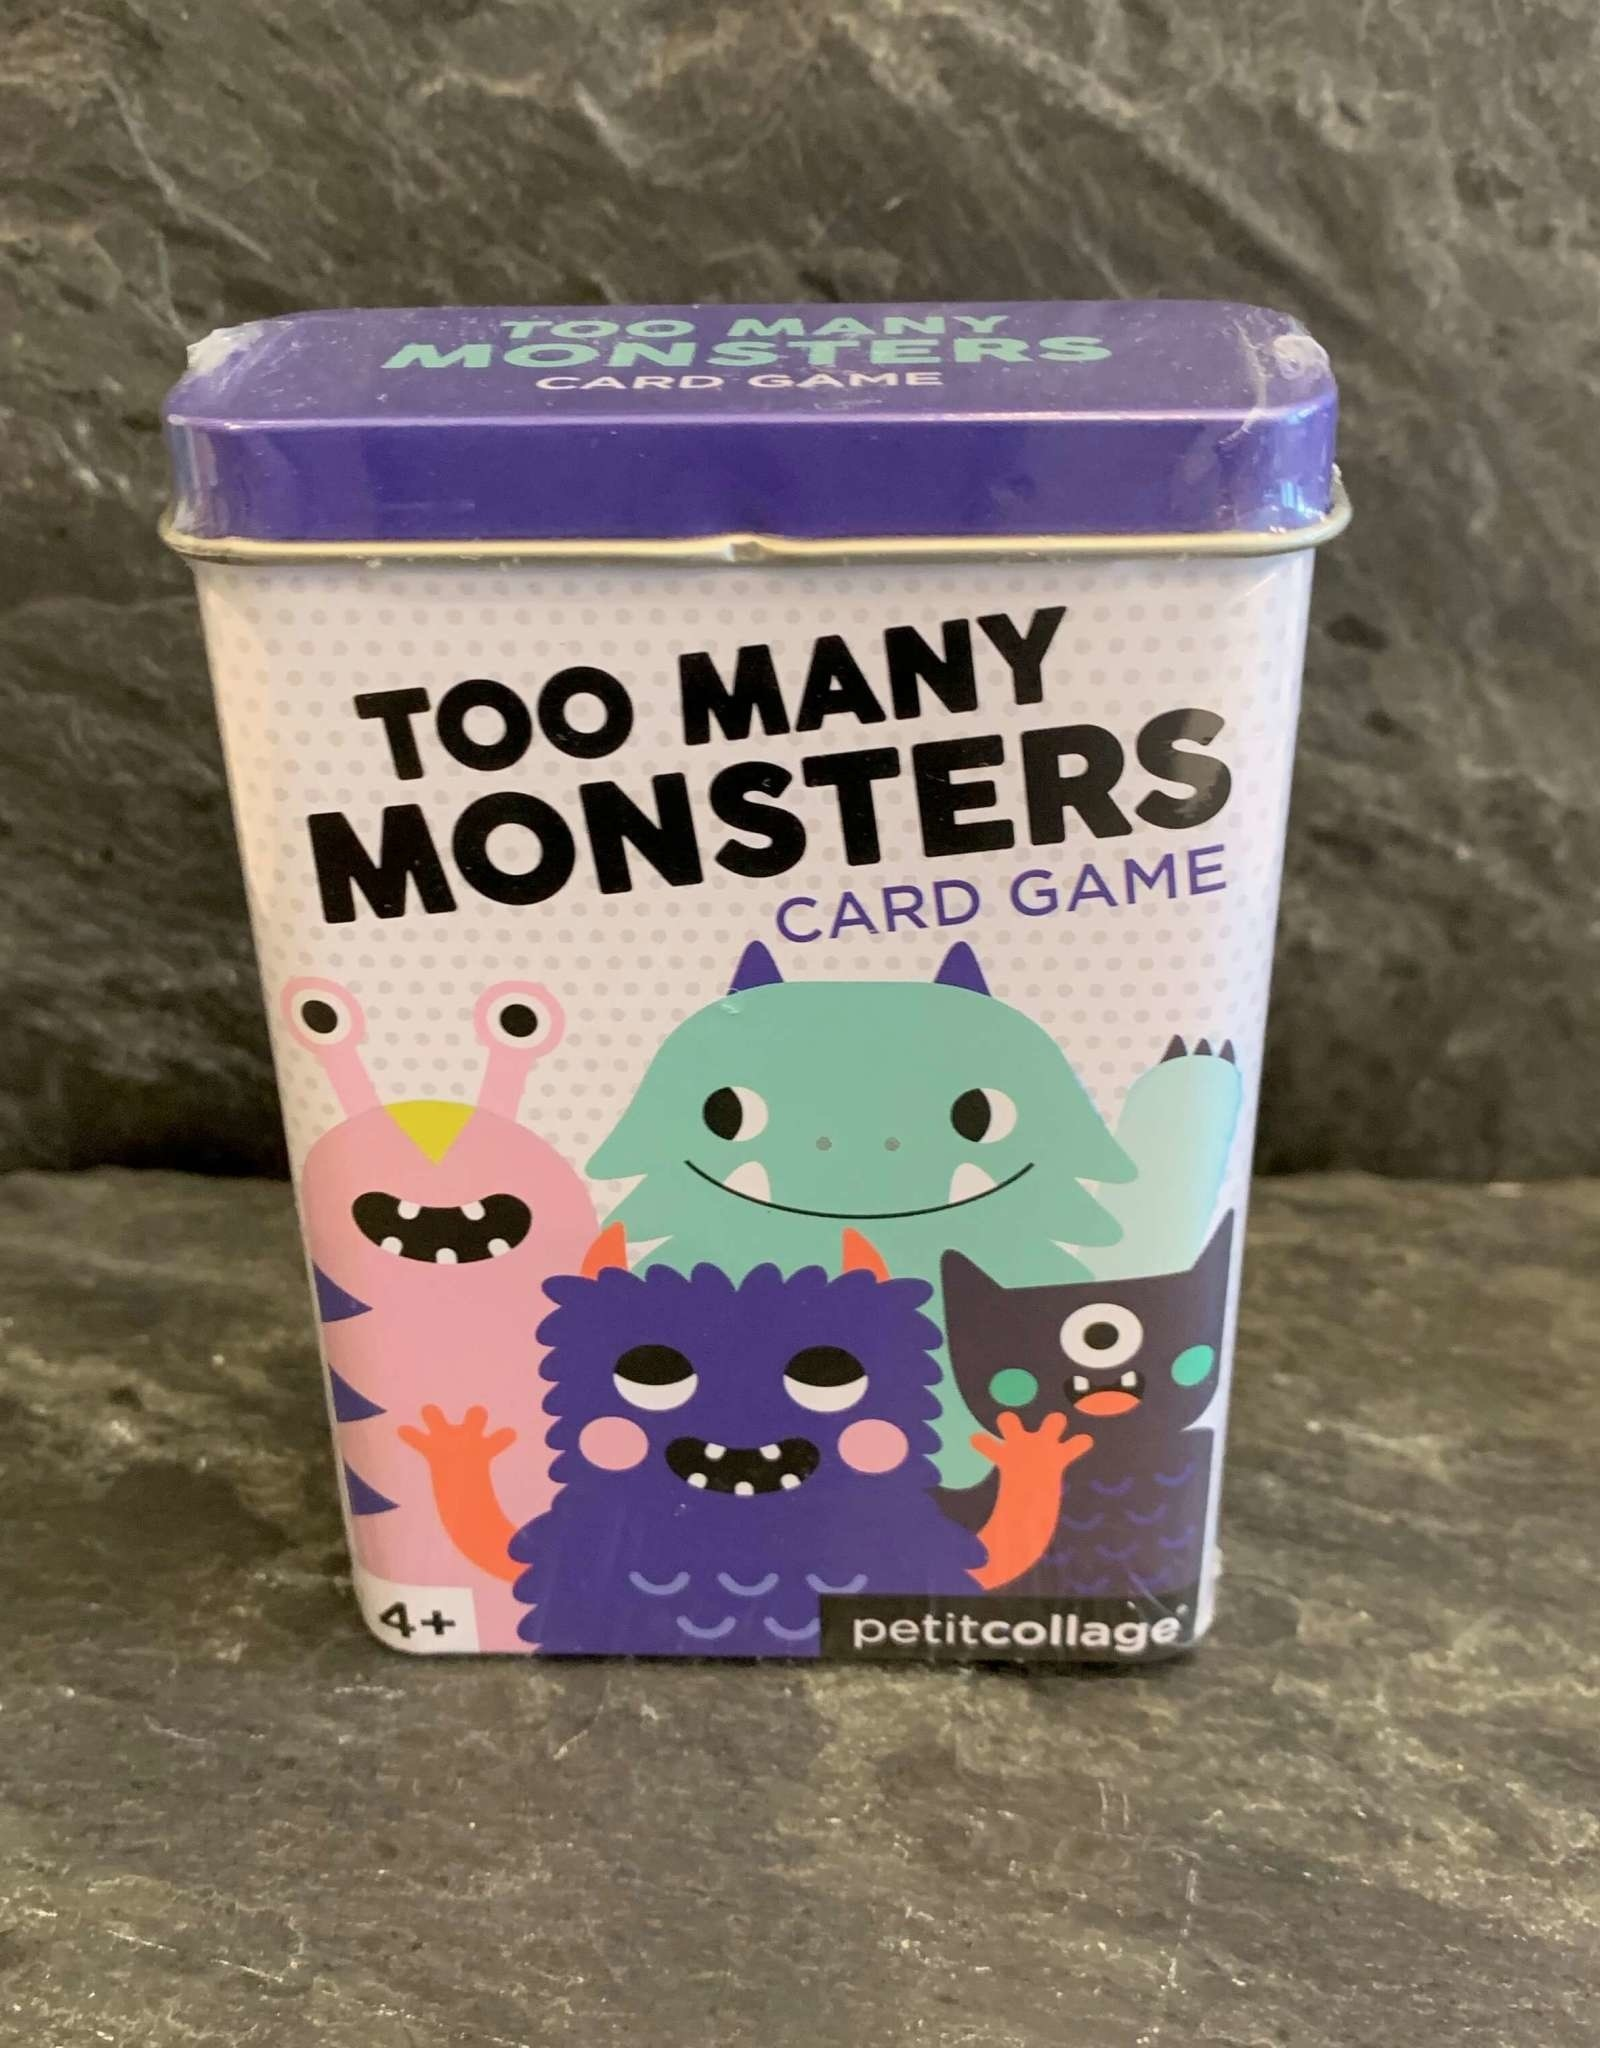 PetitCollage Petit Collage Too Many Monsters Card Game